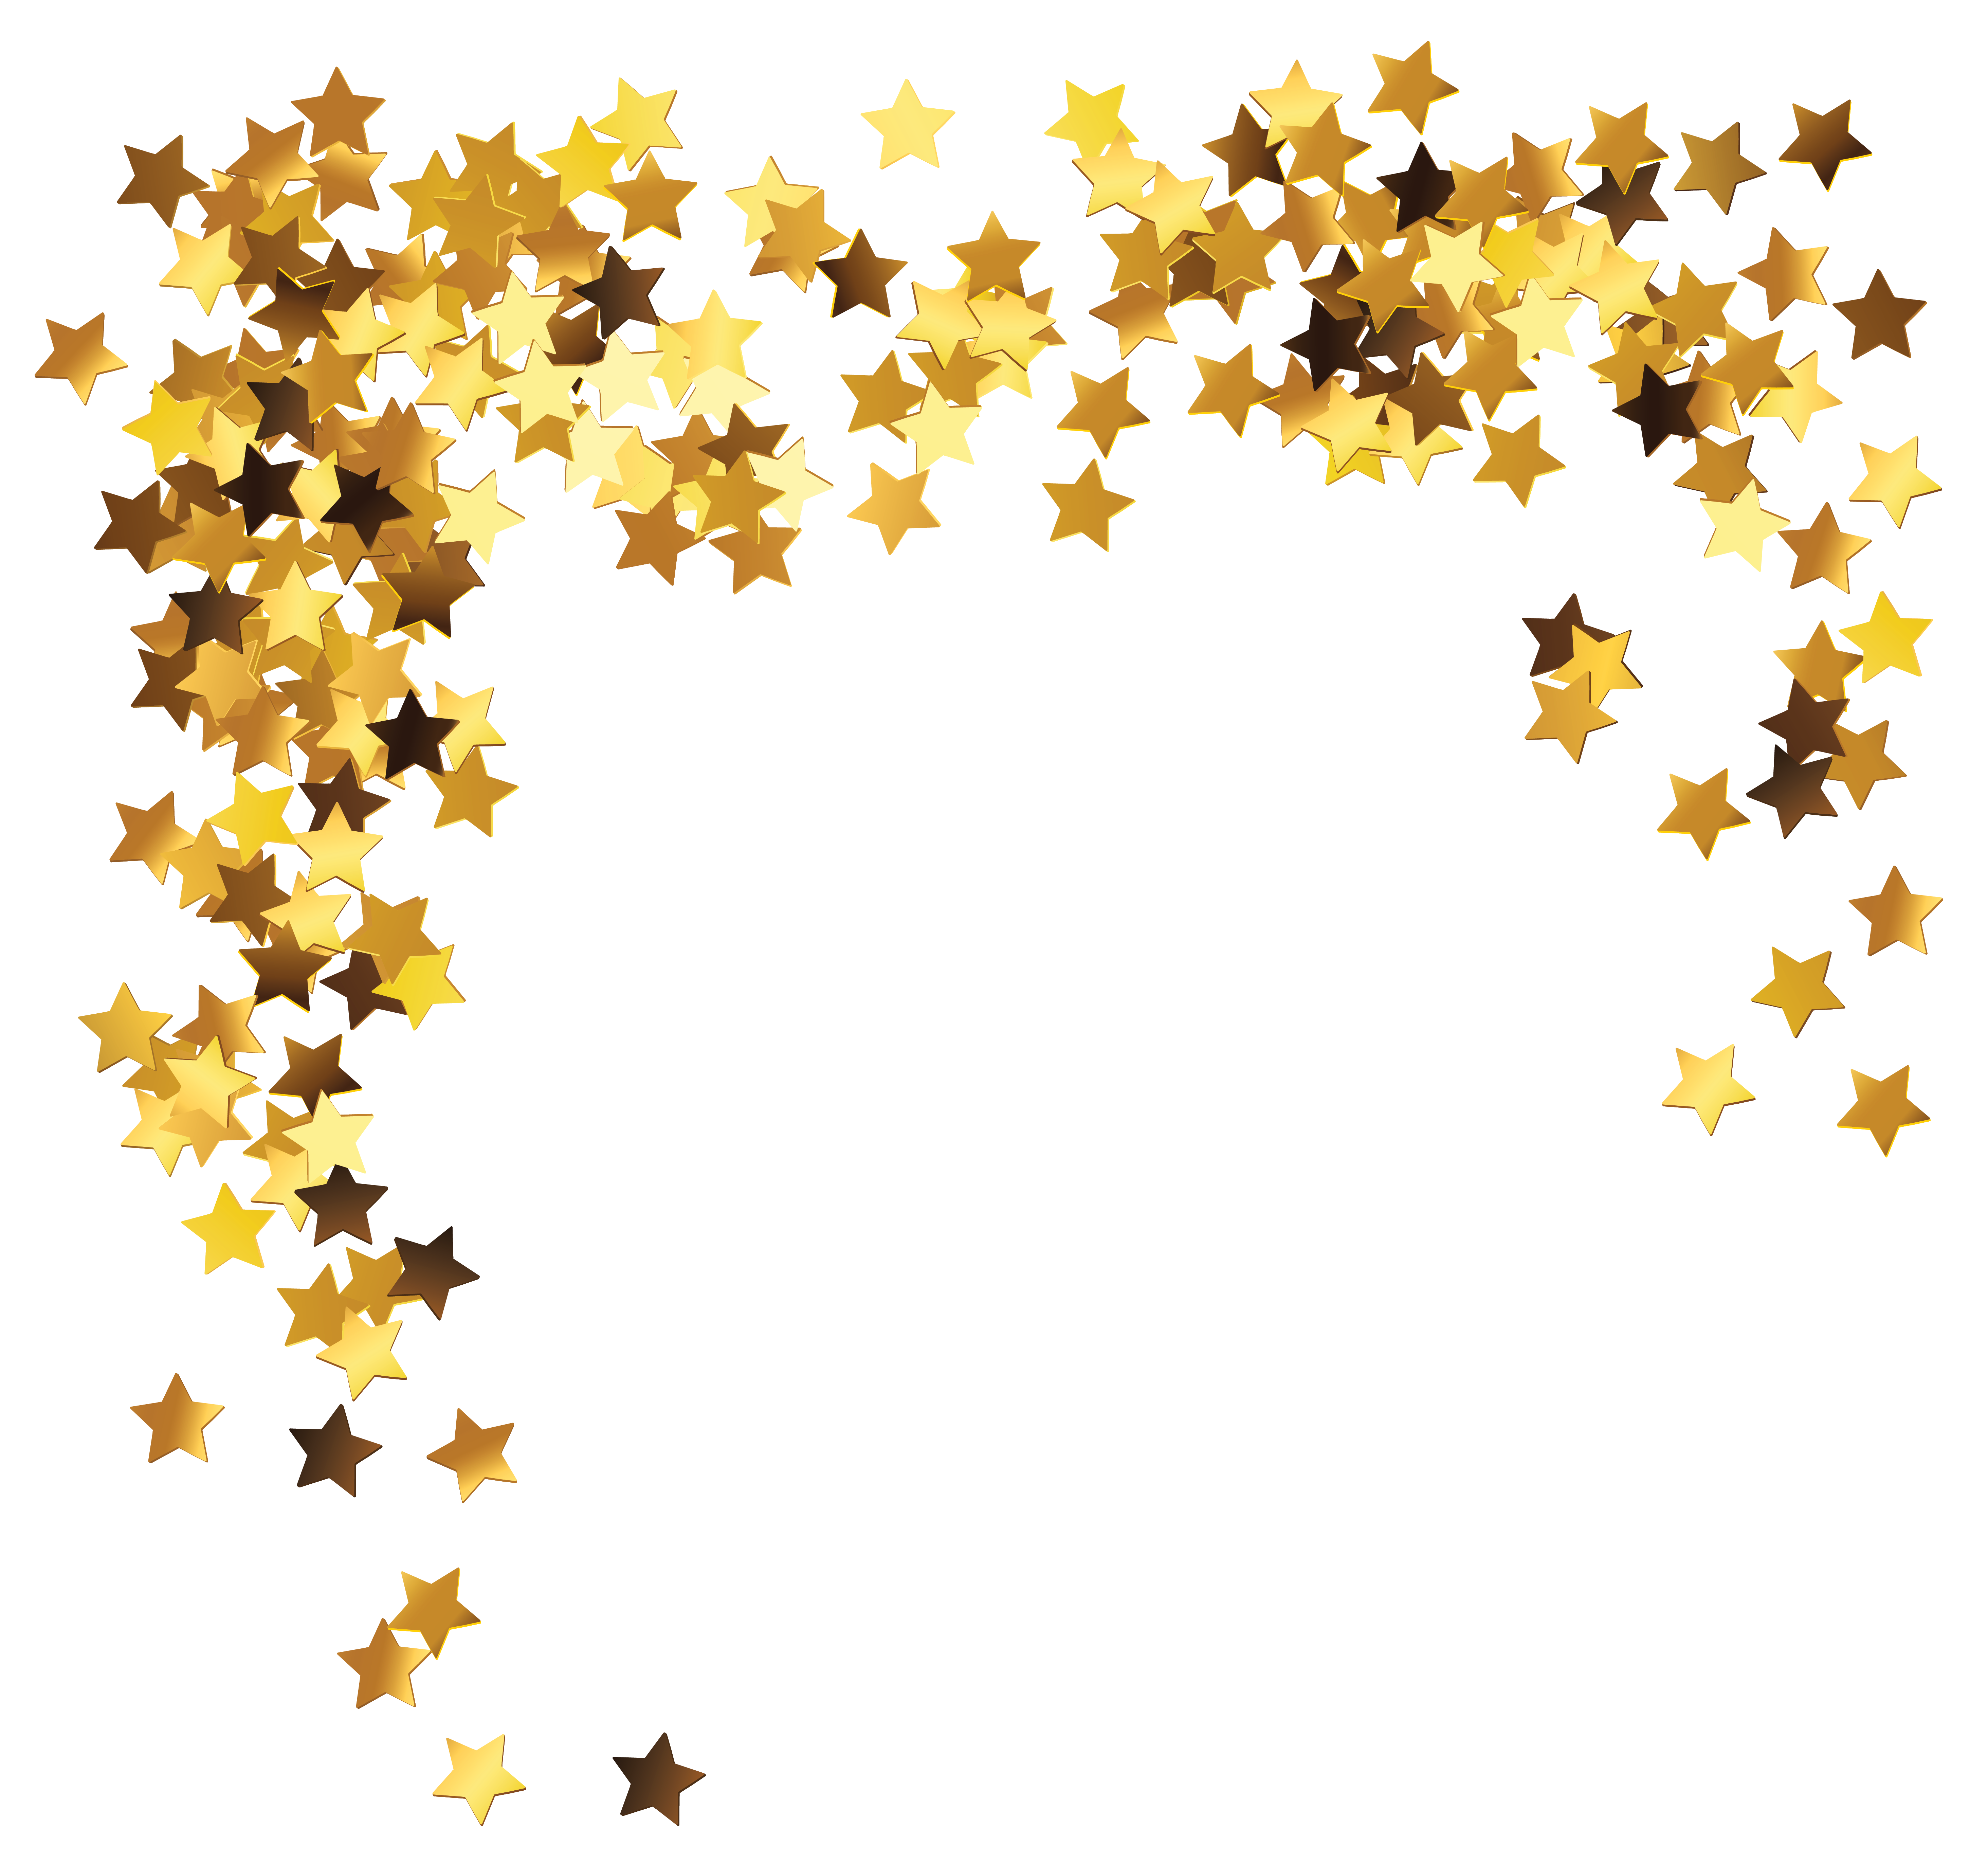 Stars border png. Gold decoration clipart picture